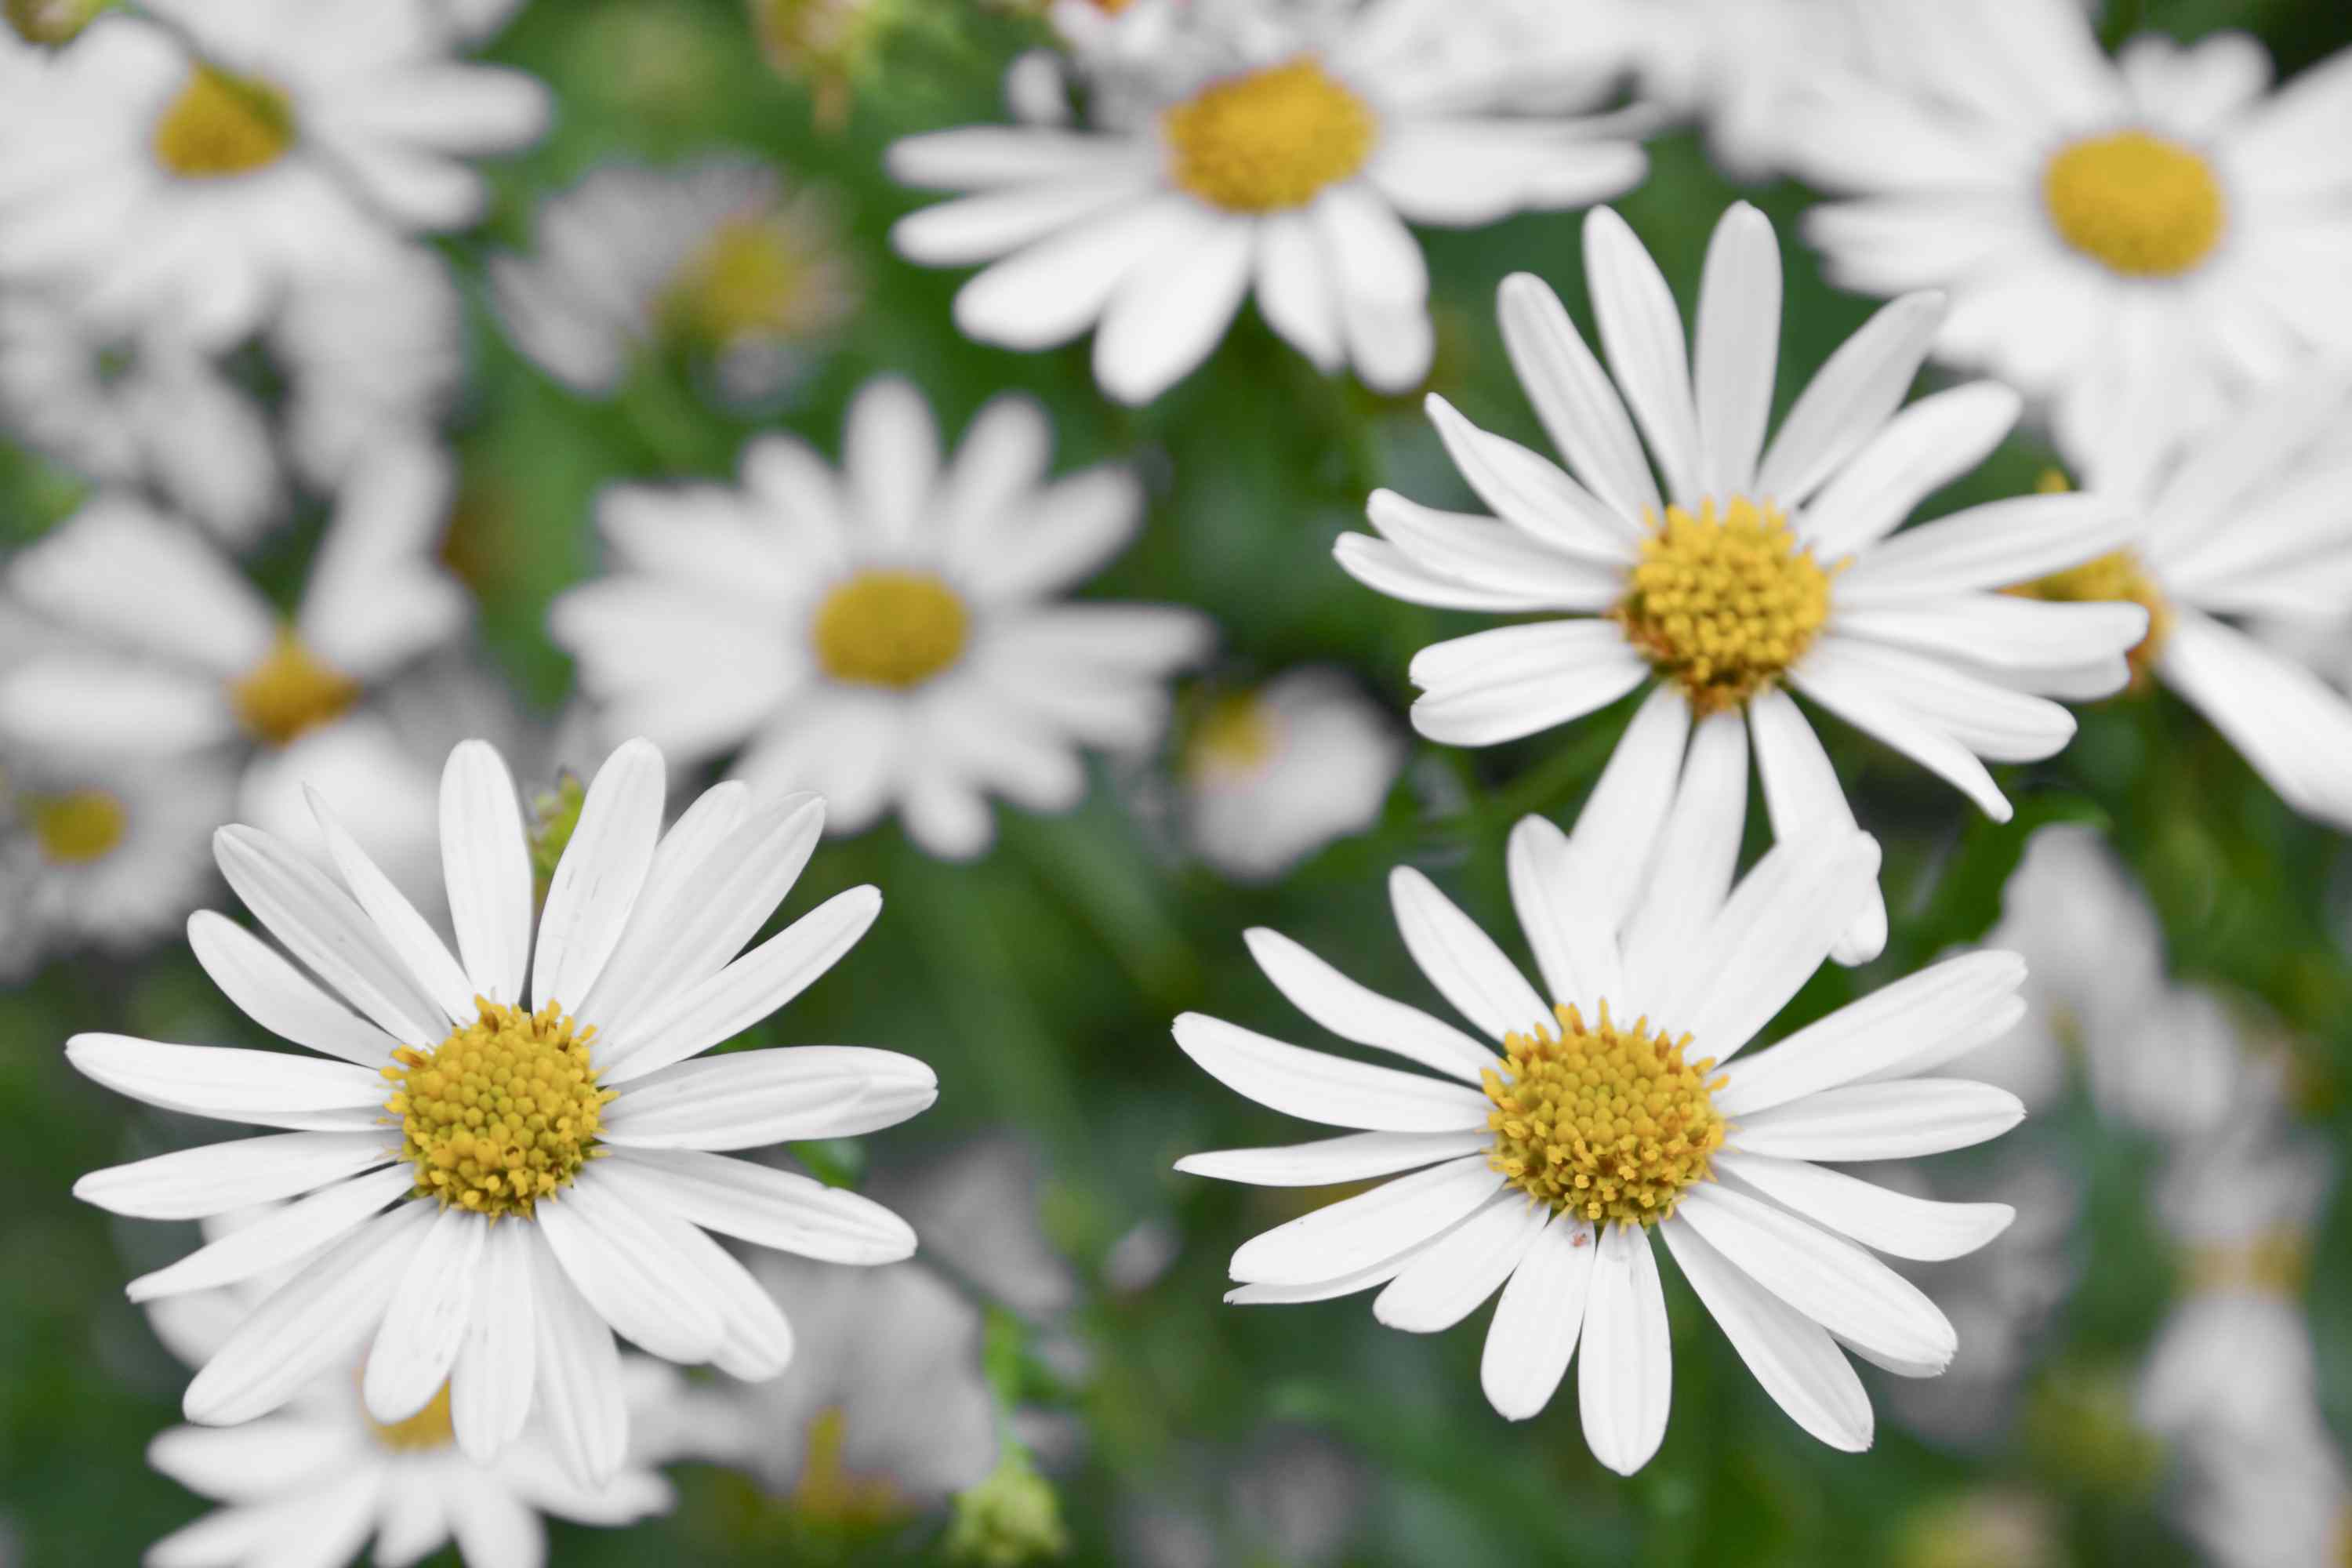 Mexican fleabane flowers with white daisy-like petals and yellow pollen centers closeup